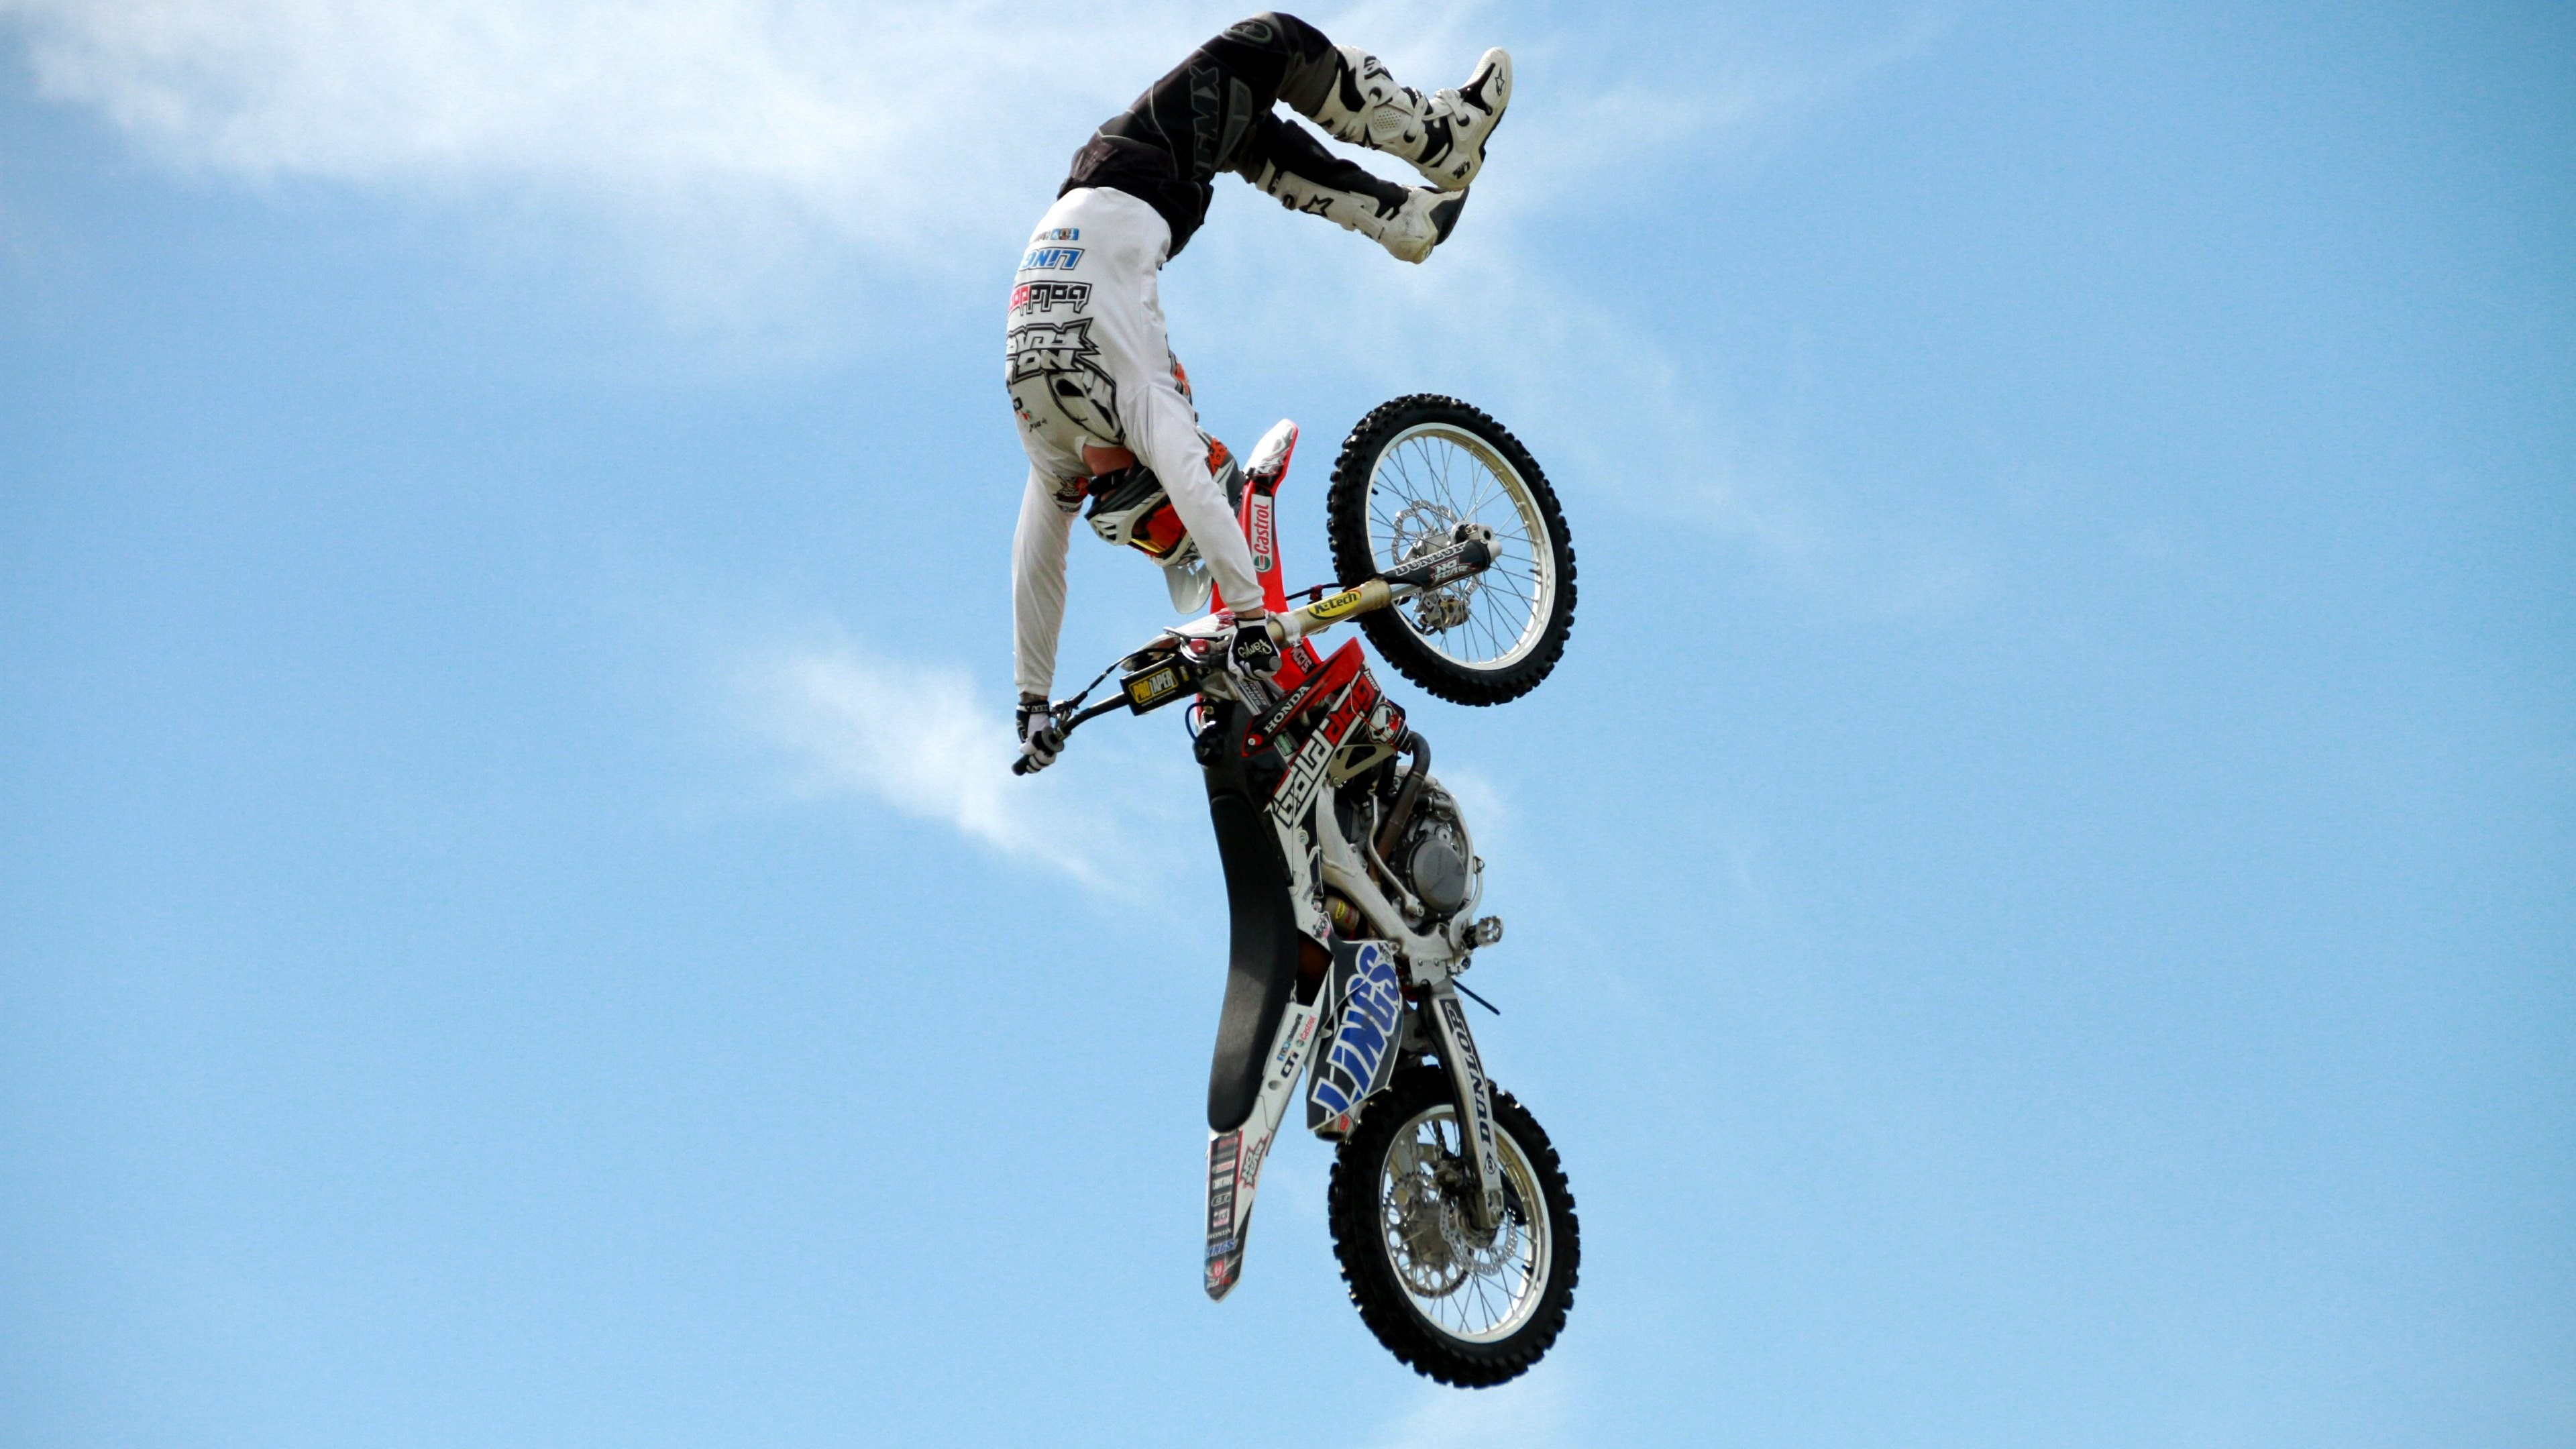 Wallpaper Motocross Fmx Rider Freestyle Maneuver